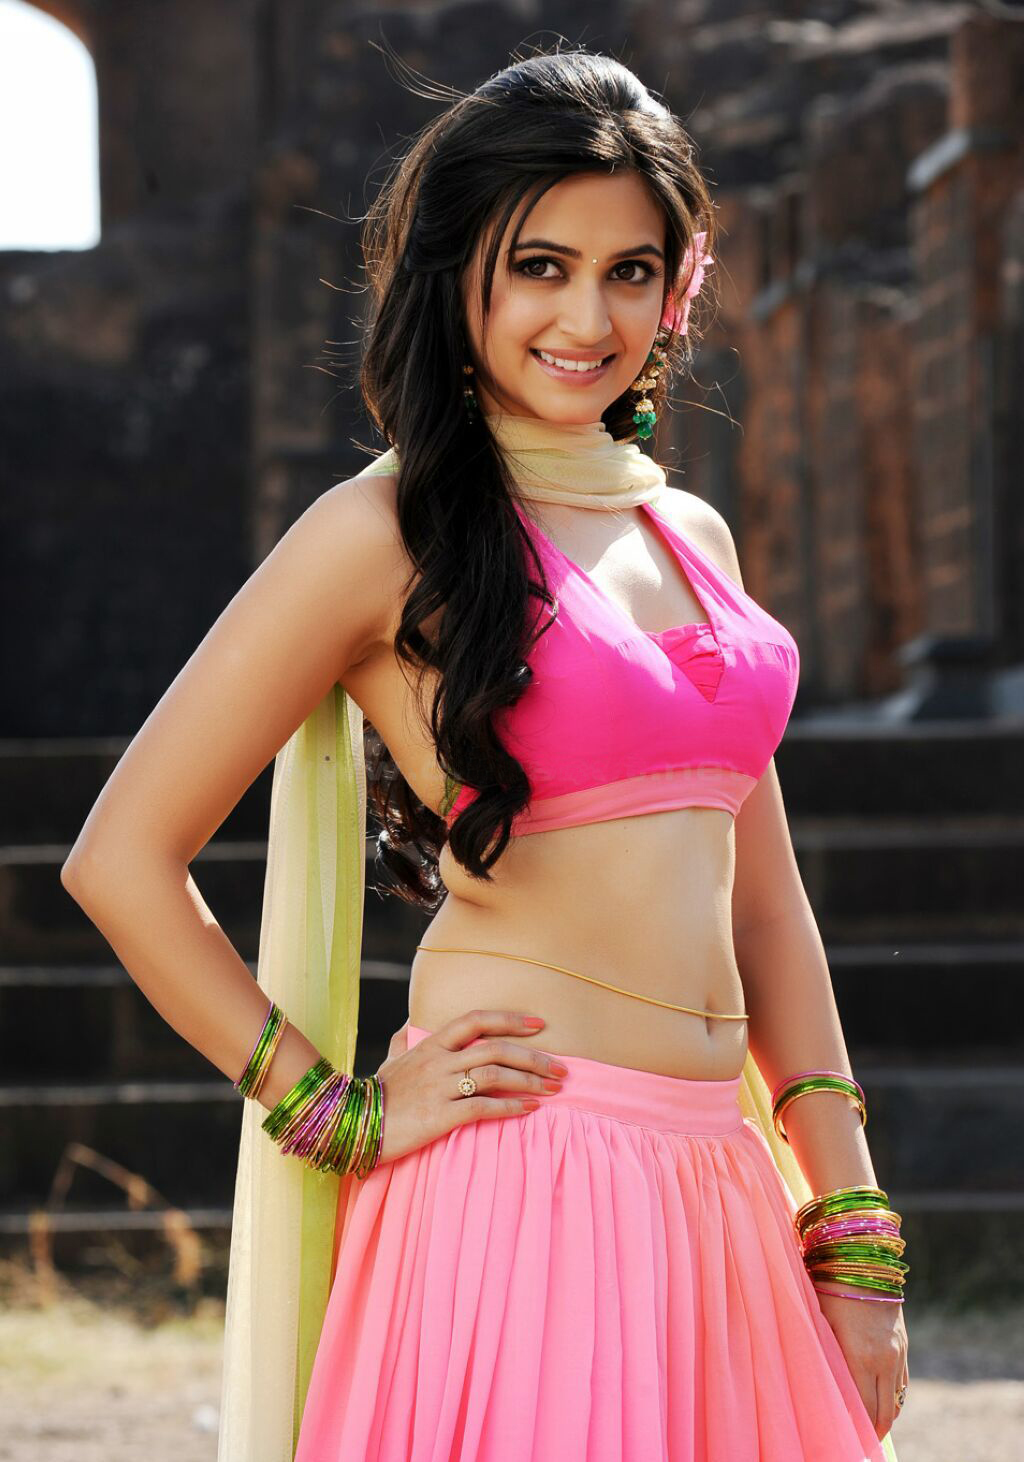 Kriti Kharbanda Most Hot Stills Showing Beautiful Belly And Navel With Gold Waist Chain ❤